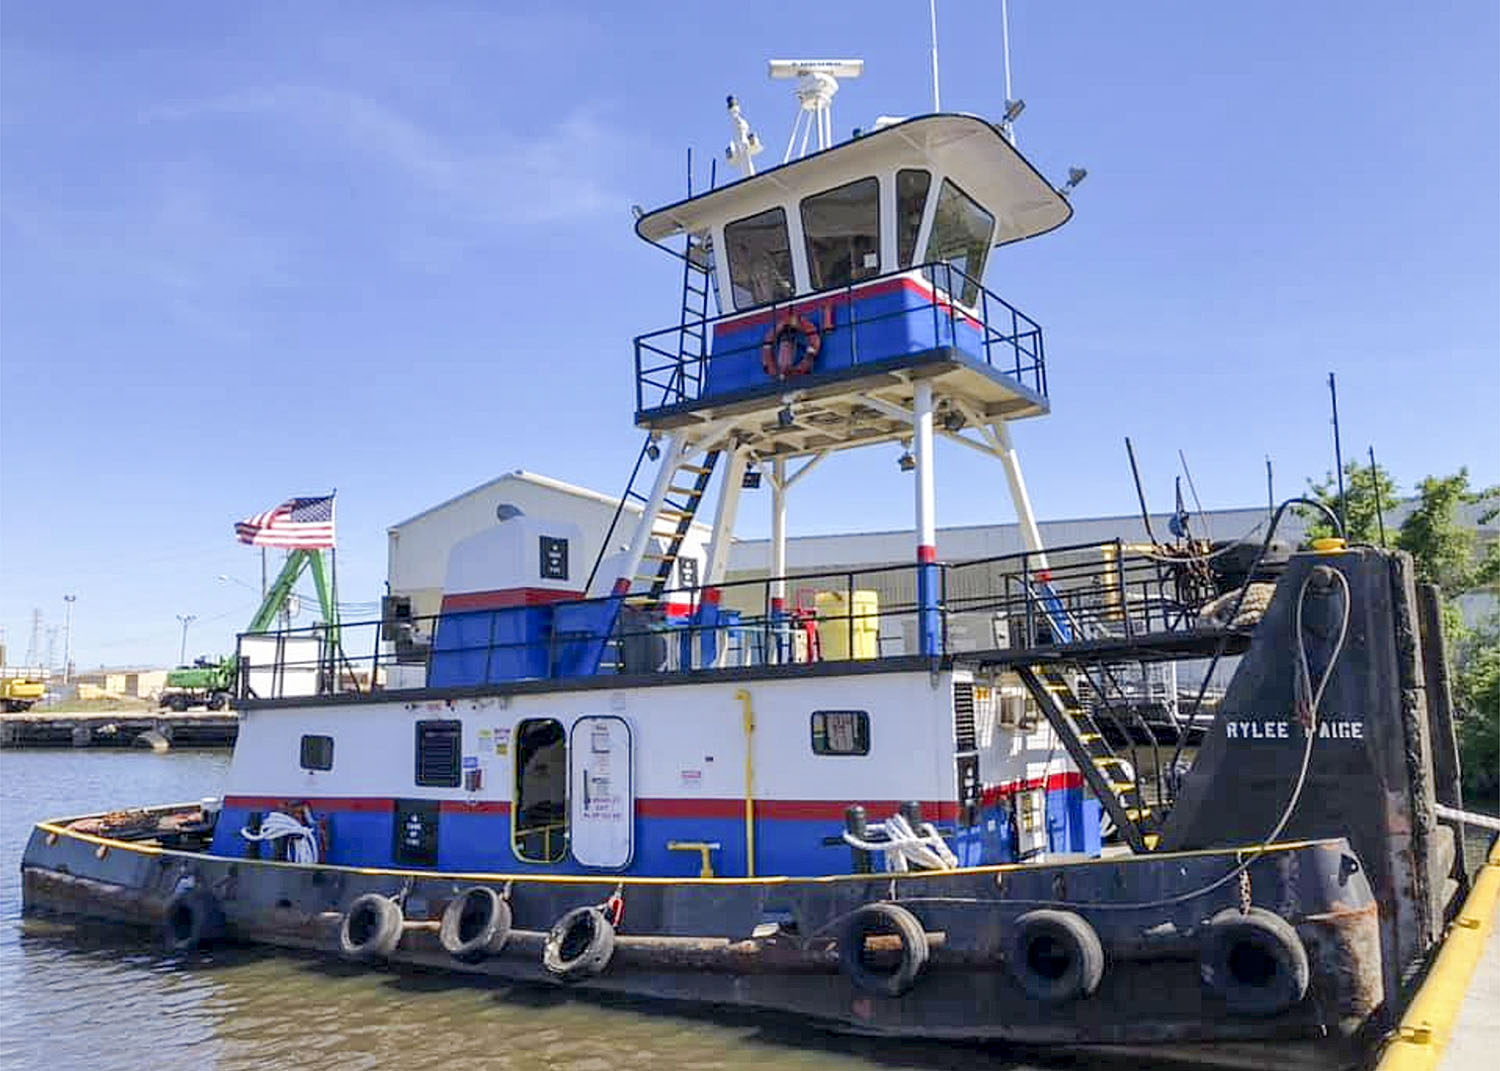 The Rylee Paige is one of six boats in the Whitaker Marine fleet.